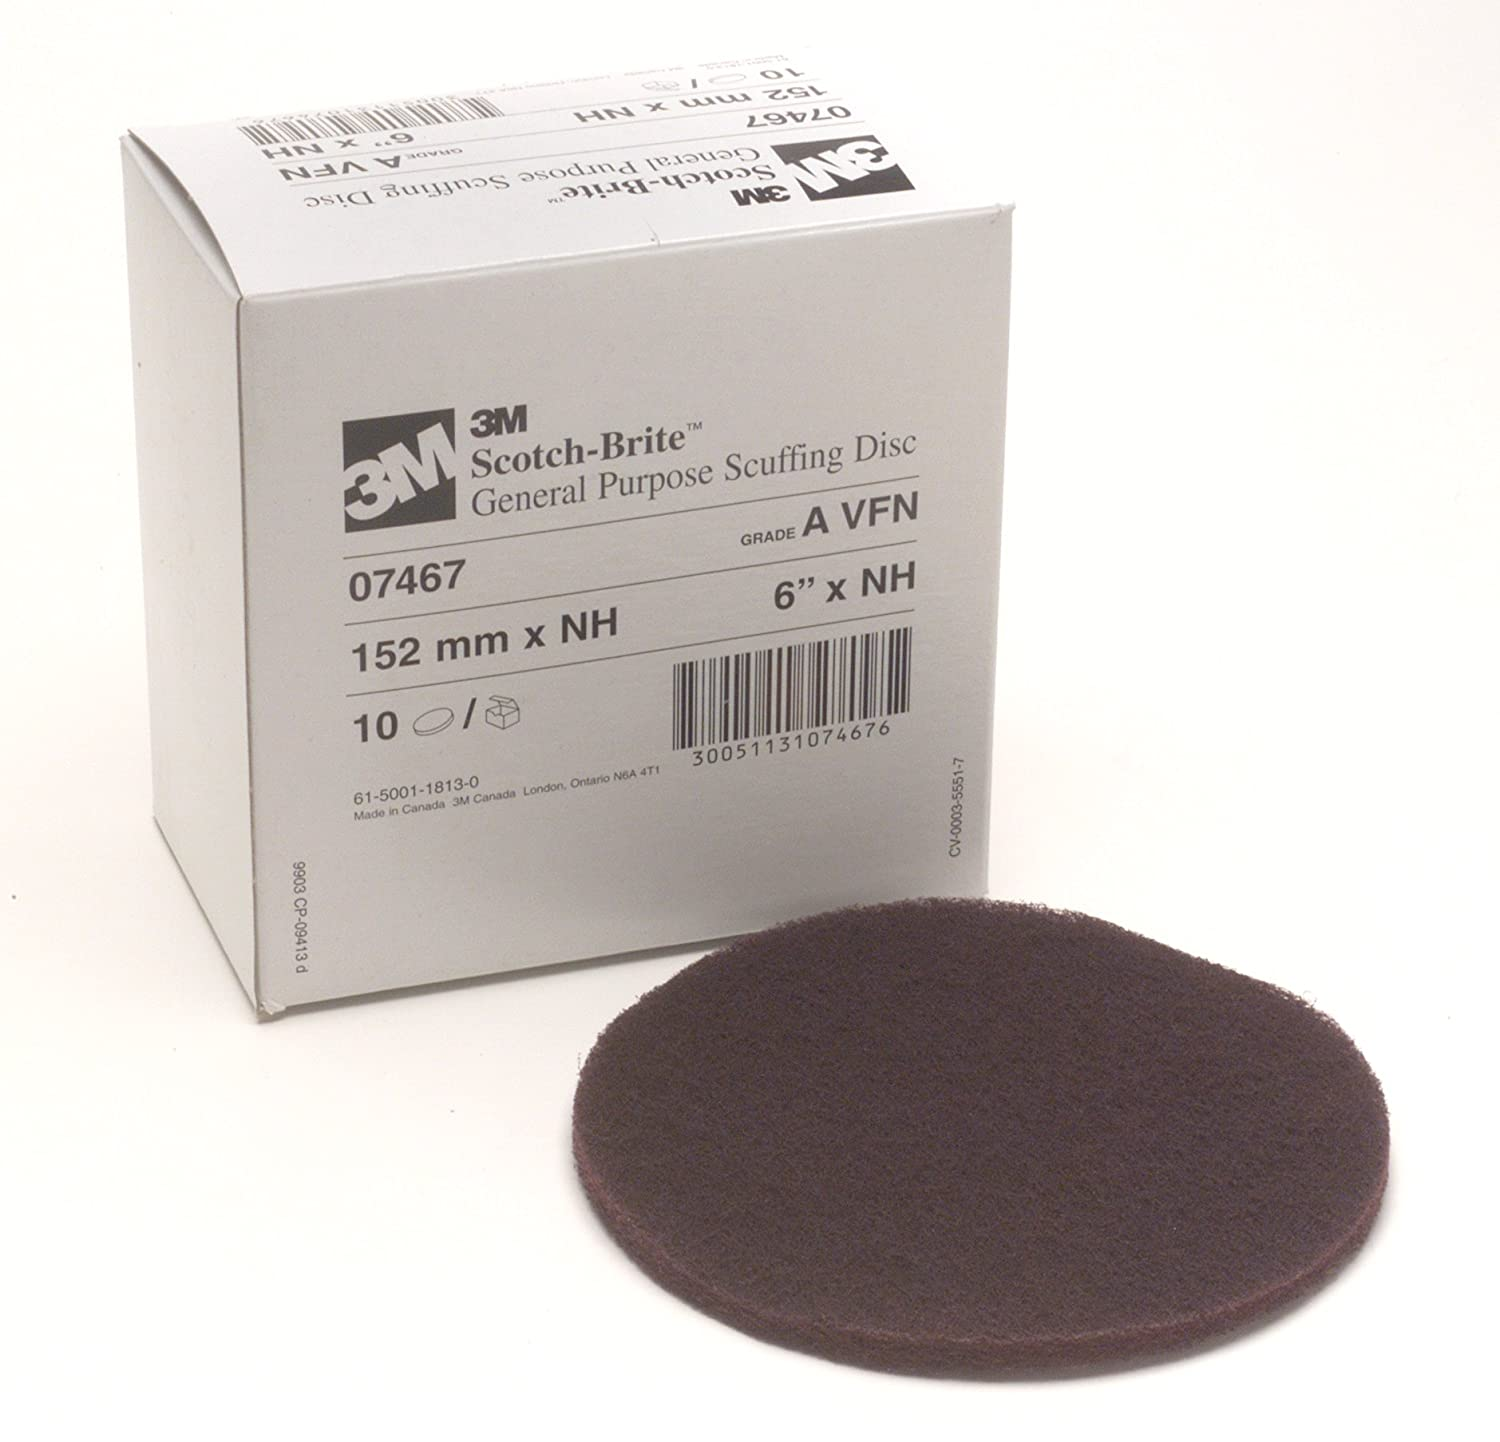 B00EW7I2OS Scotch-Brite Scuffing Disc 07467, 6 in x NH A VFN 81xRDfNIzWL